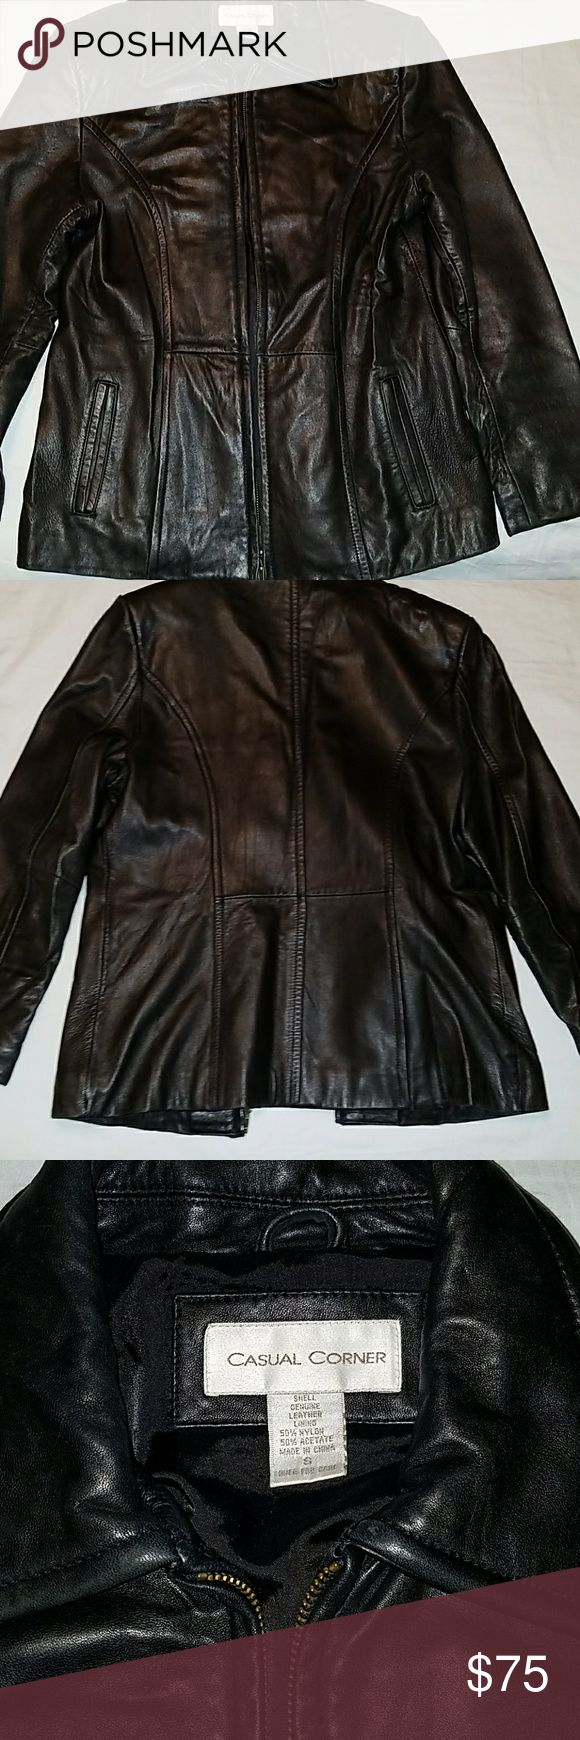 Ladies Leather jacket Ladies small leather jacket. Lined with 50%nylon and 50% Acetate. Fits size 2-4 Jackets & Coats Blazers